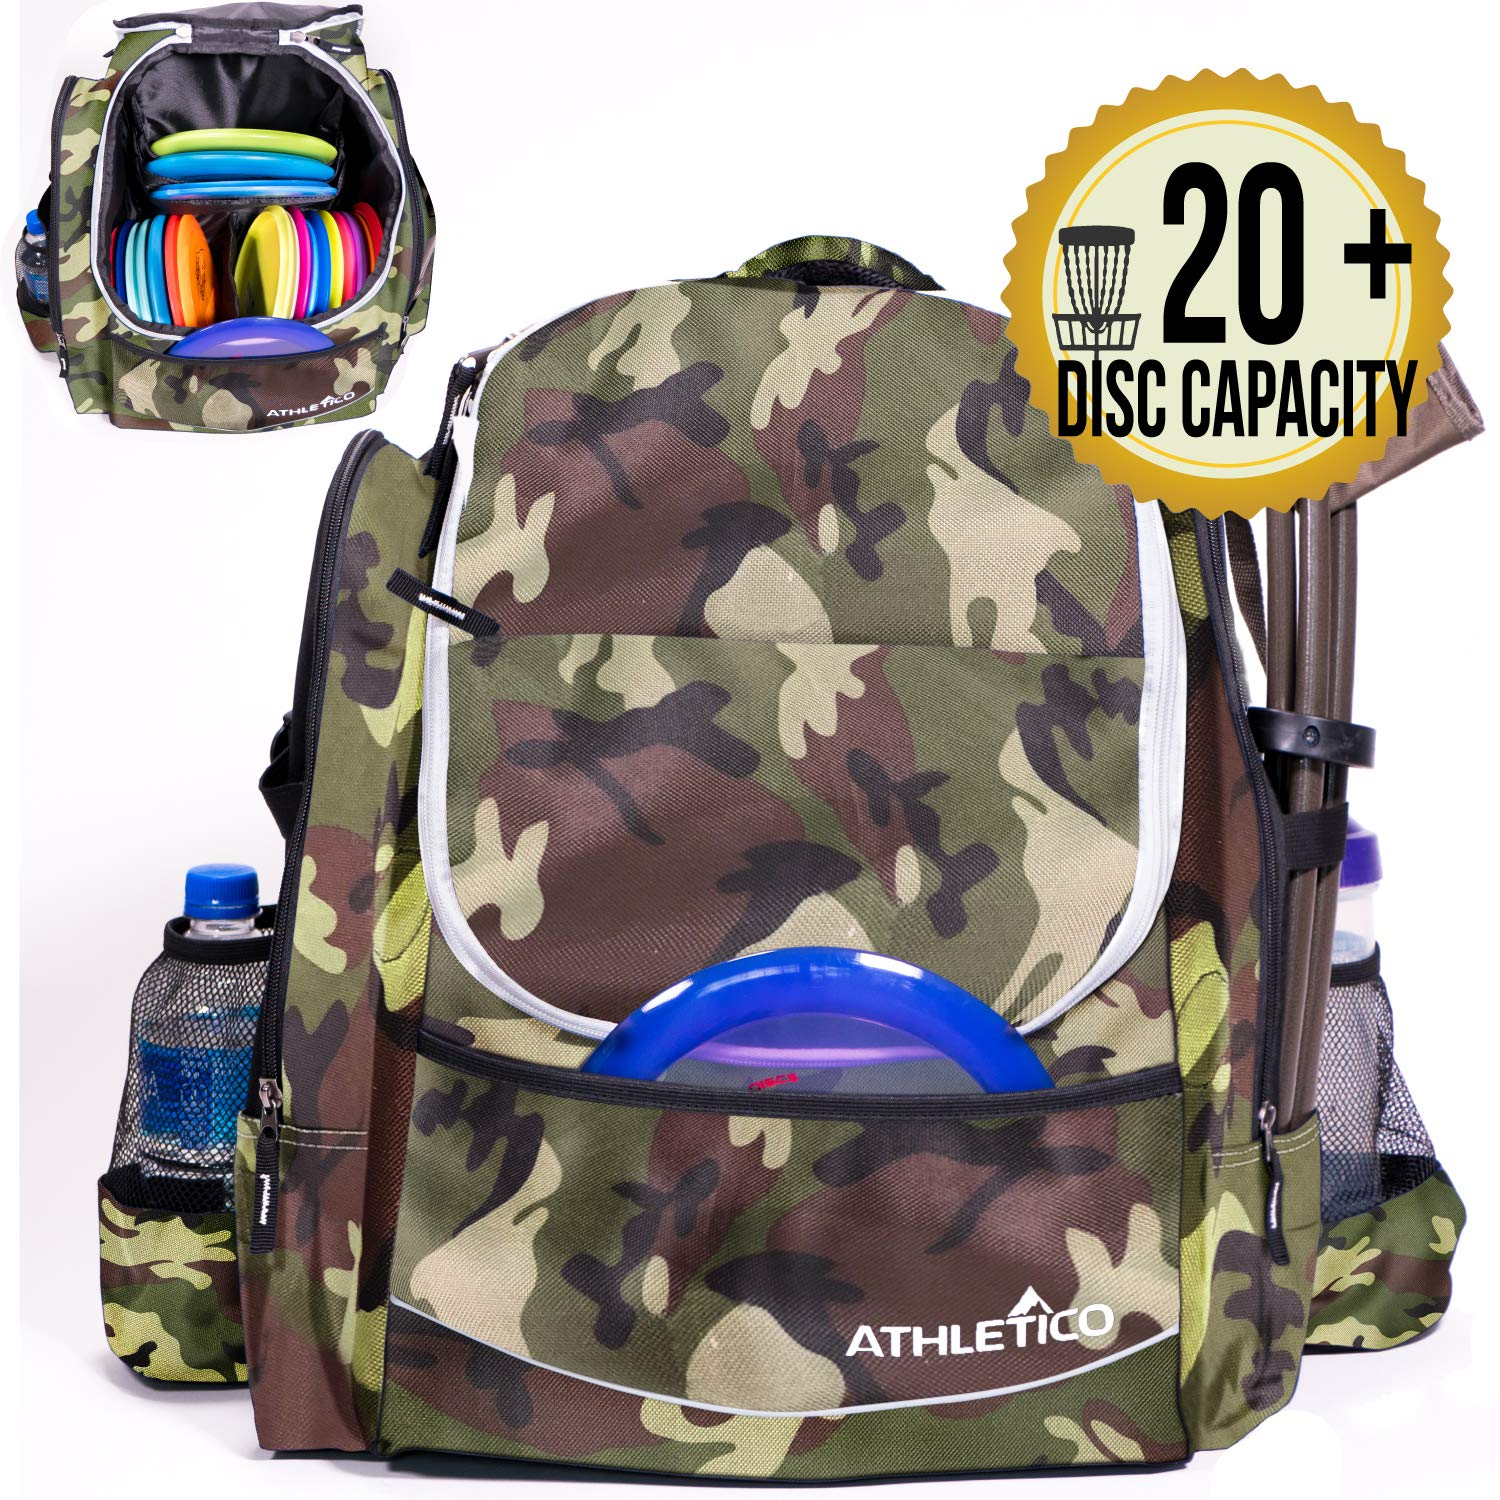 Athletico Power Shot Disc Golf Backpack | 20+ Disc Capacity | Pro or Beginner Disc Golf Bag | Unisex Design (Green Camo) by Athletico